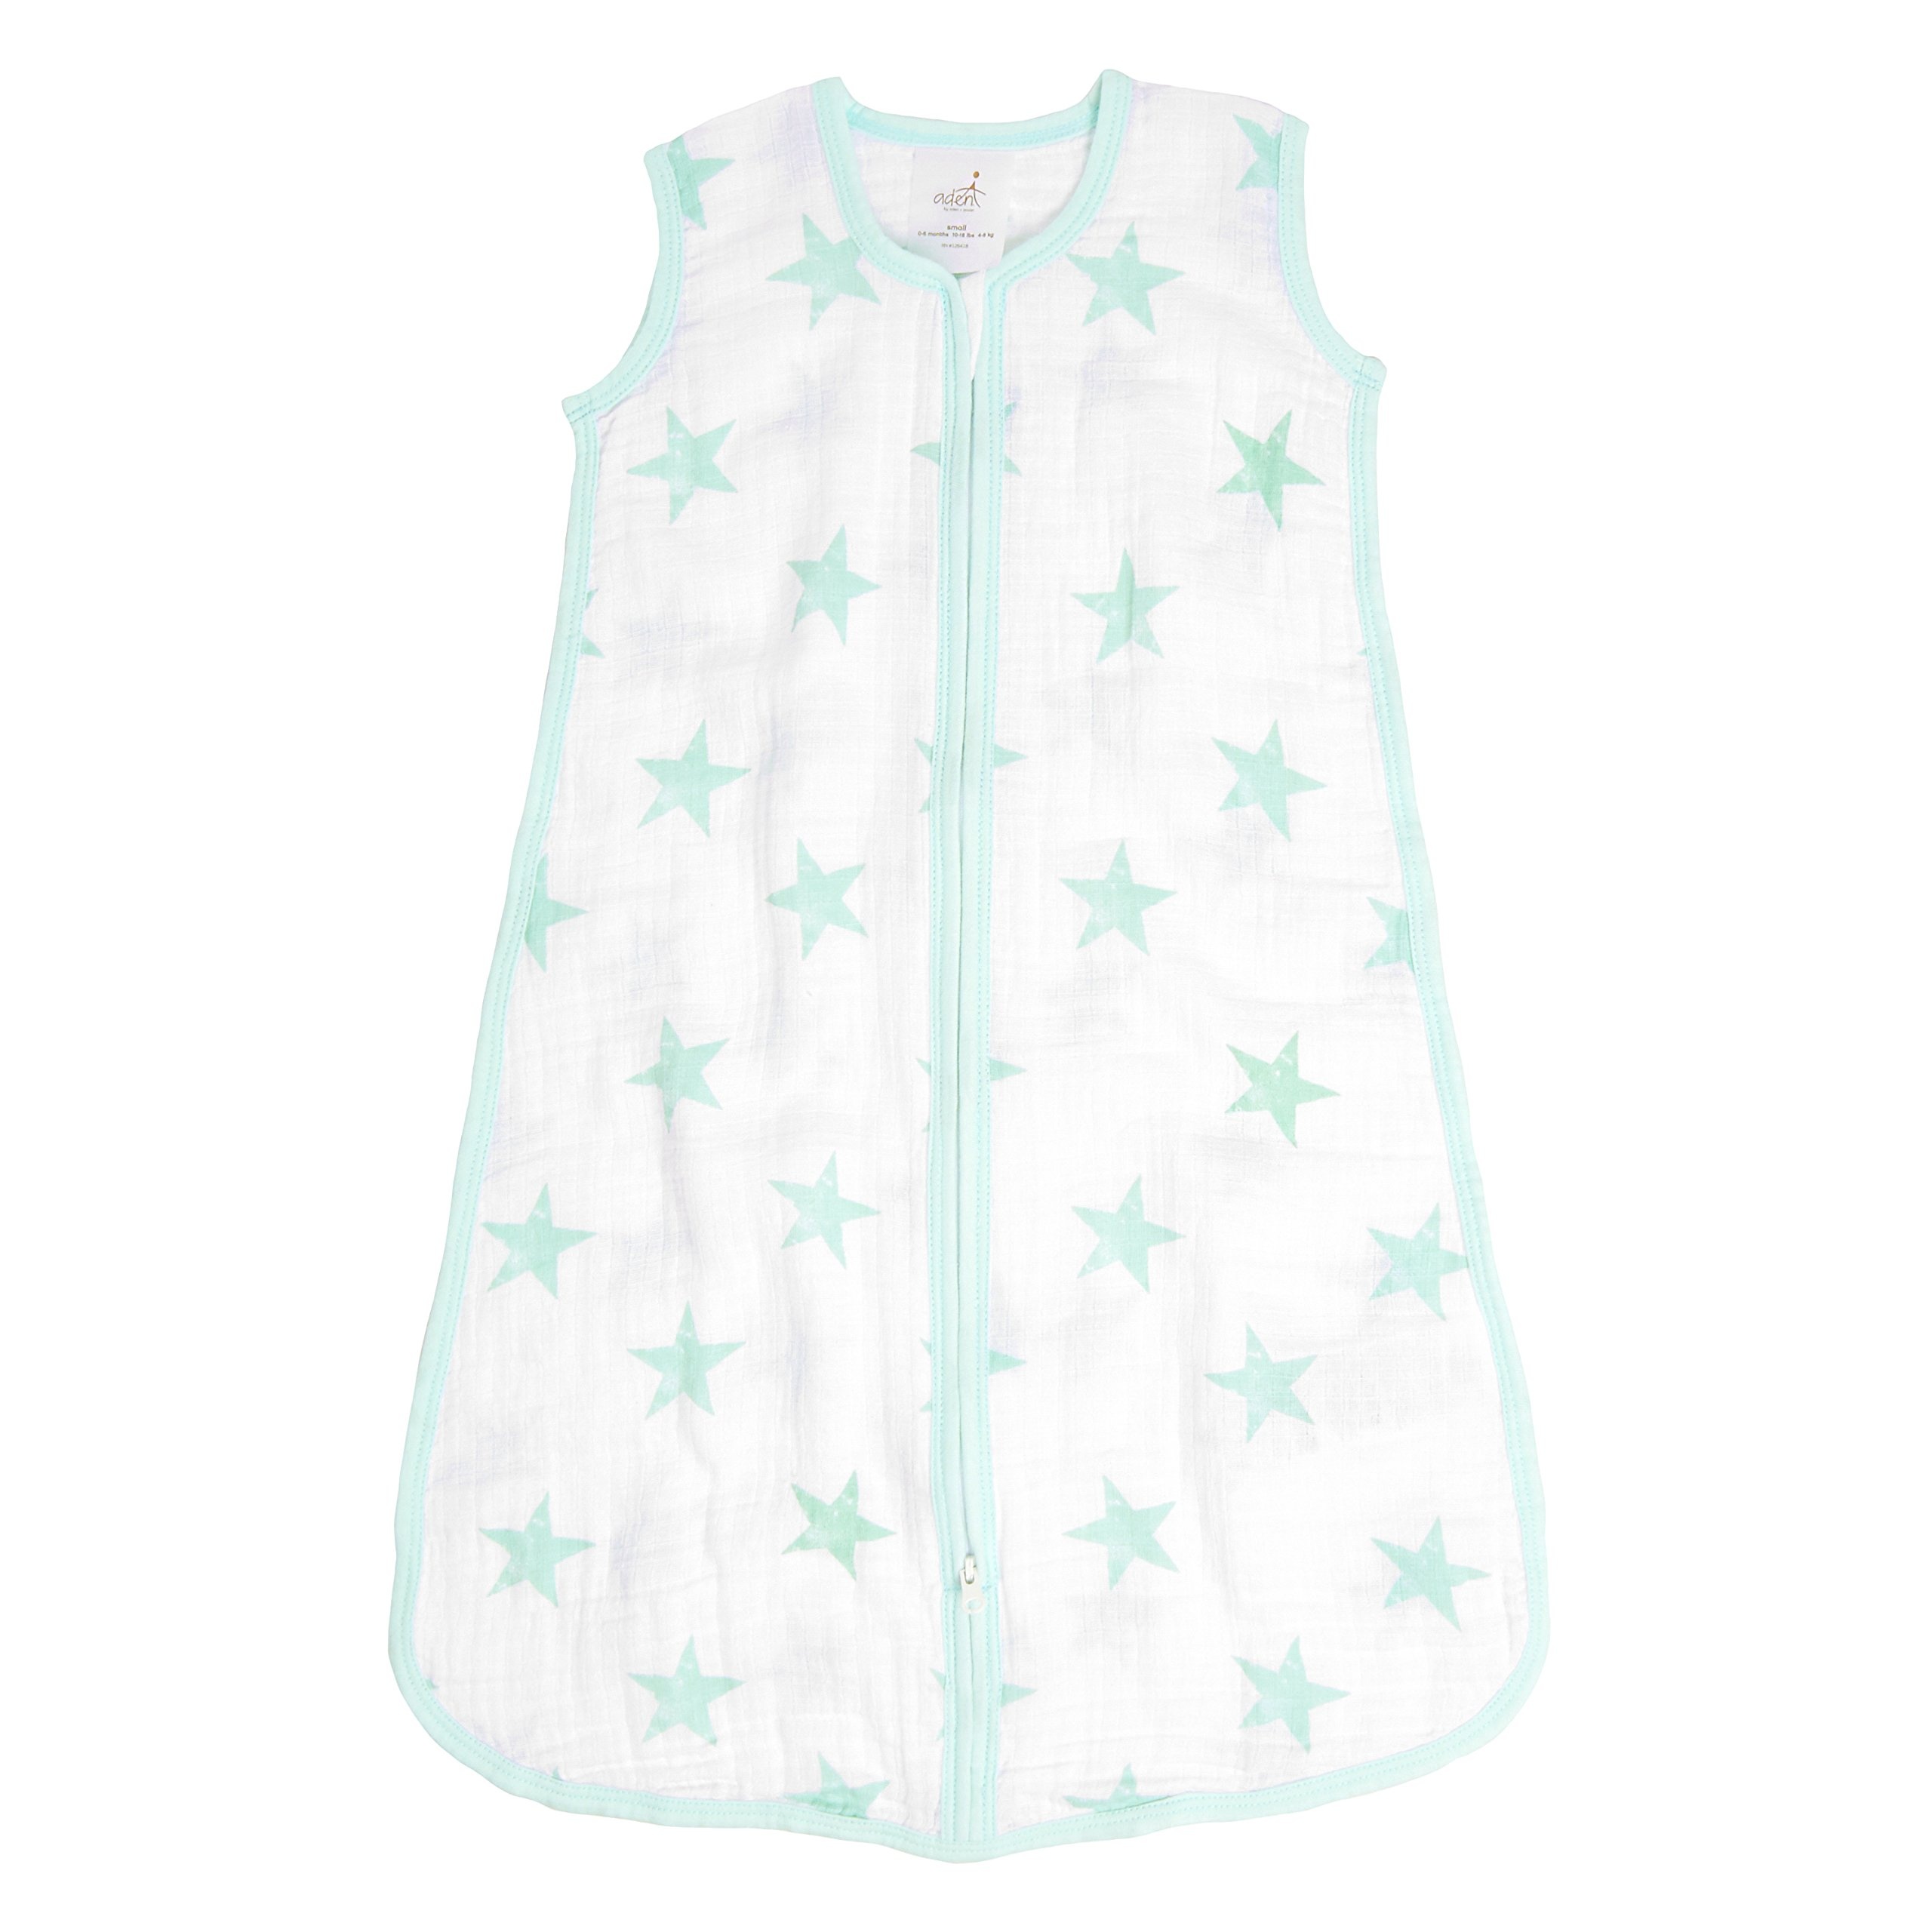 Aden by Aden + Anais Classic Sleeping Bag, 100% Cotton Muslin, Wearable Baby Blanket, Dream, Stars, Small, 0-6 Months